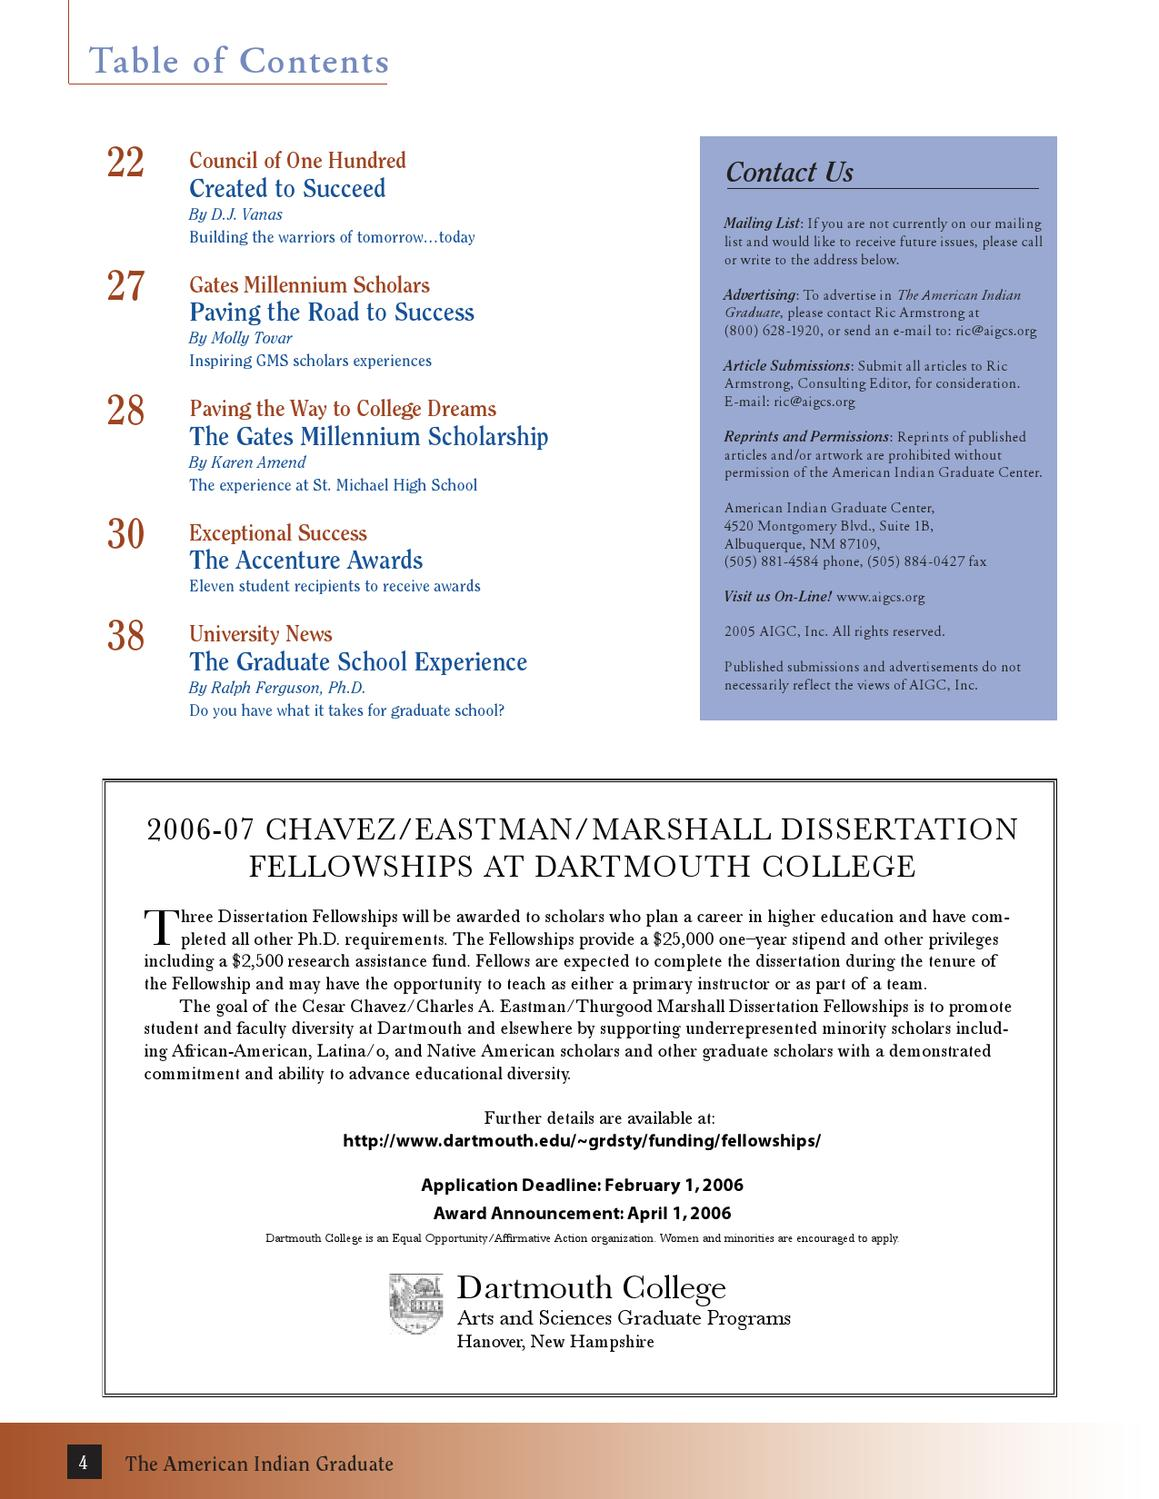 chavez/eastman/marshall dissertation fellowships - dartmouth college